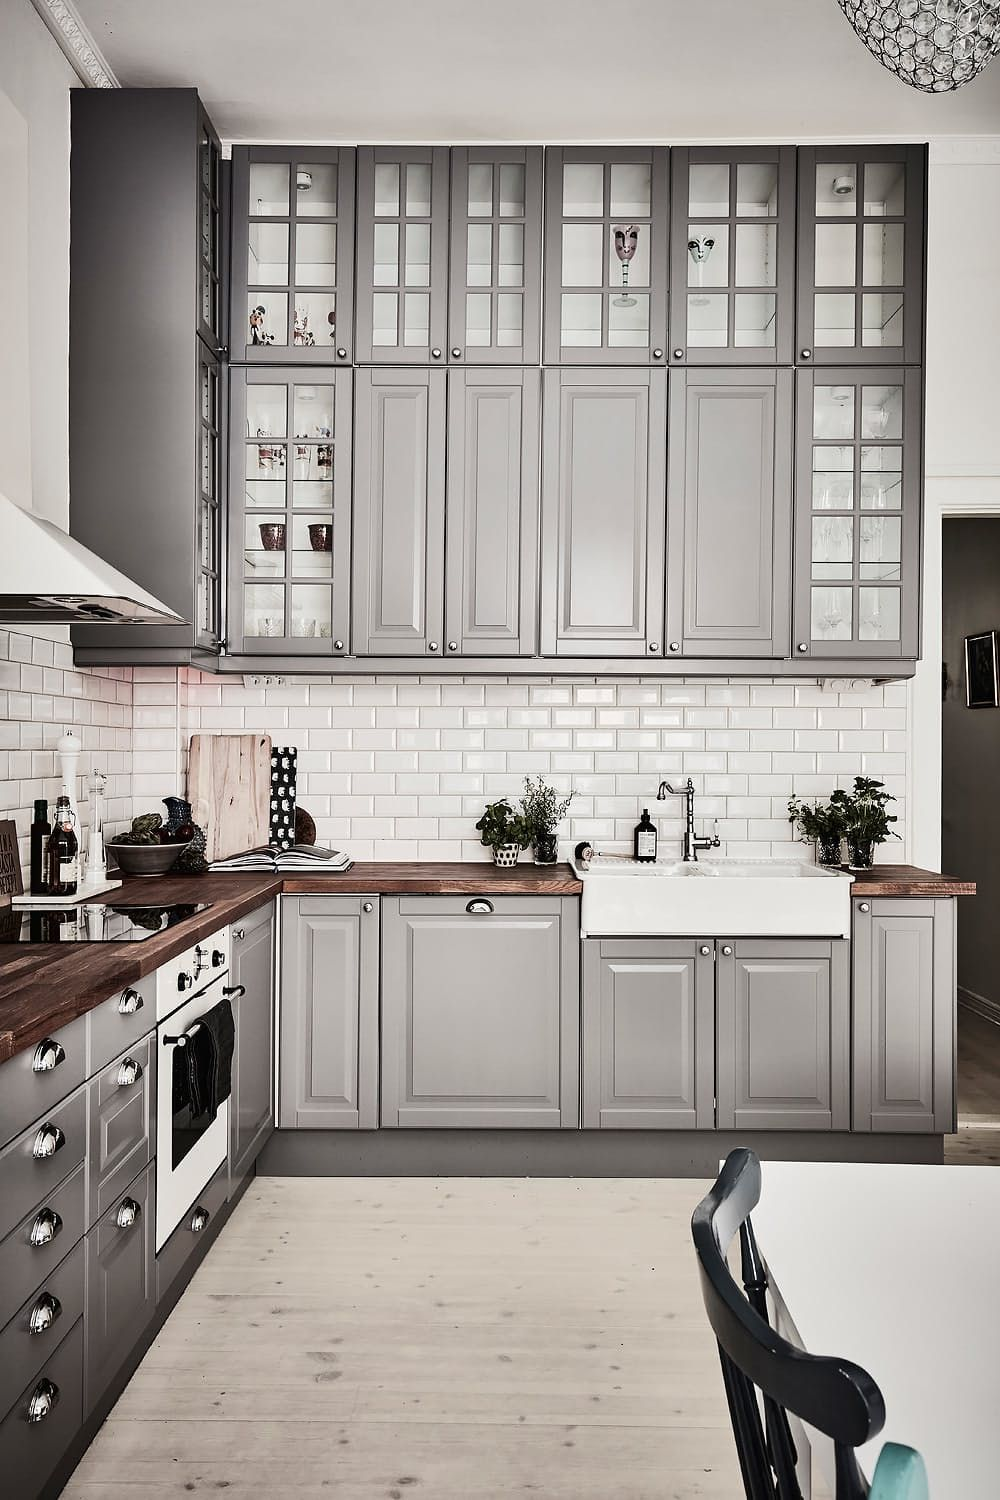 Inspiring Kitchens You Won't Believe are IKEA | Cabinet fronts ...